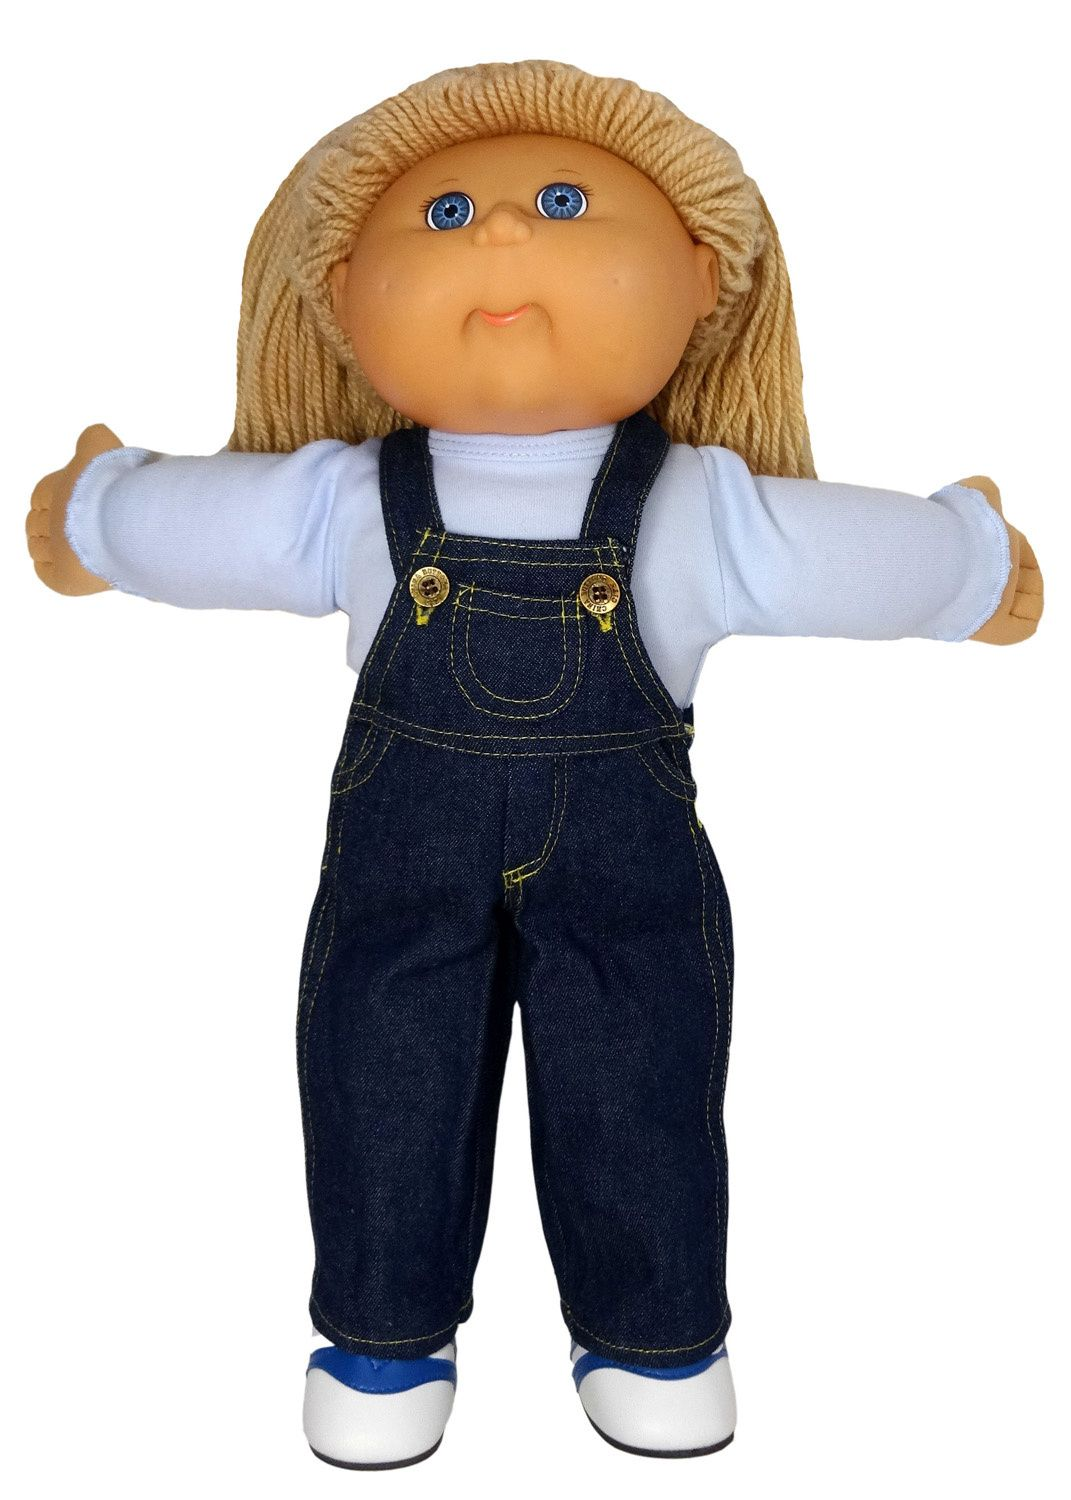 Pin on Cabbage Patch (18 Inch) Dolls Clothes and Shoes